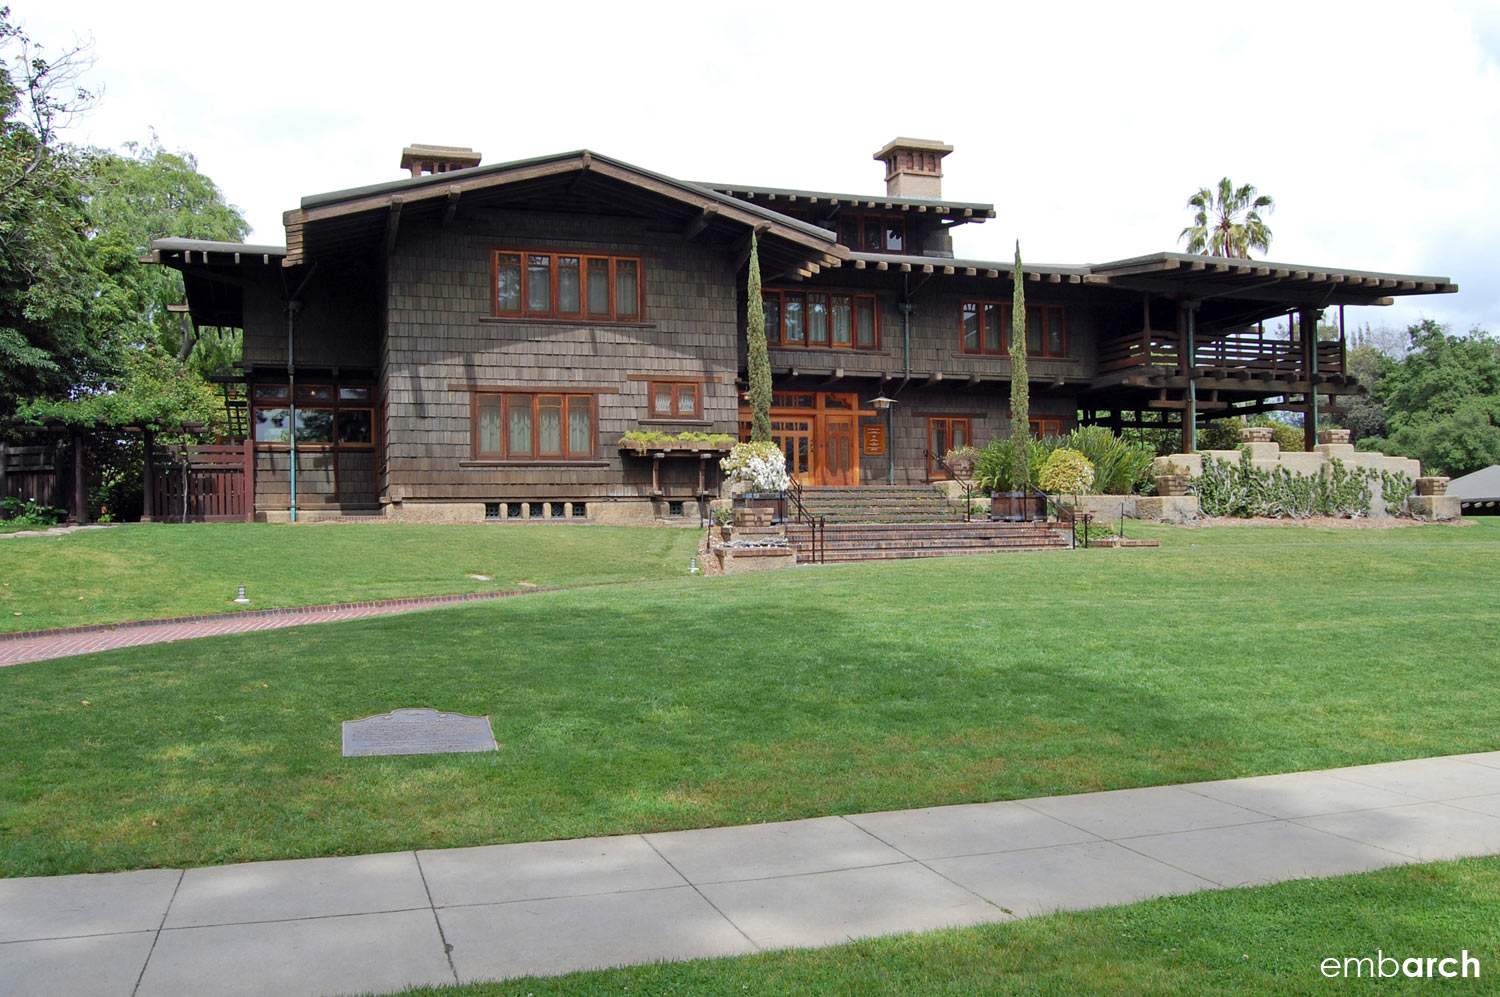 Gamble House - exterior view at front of house